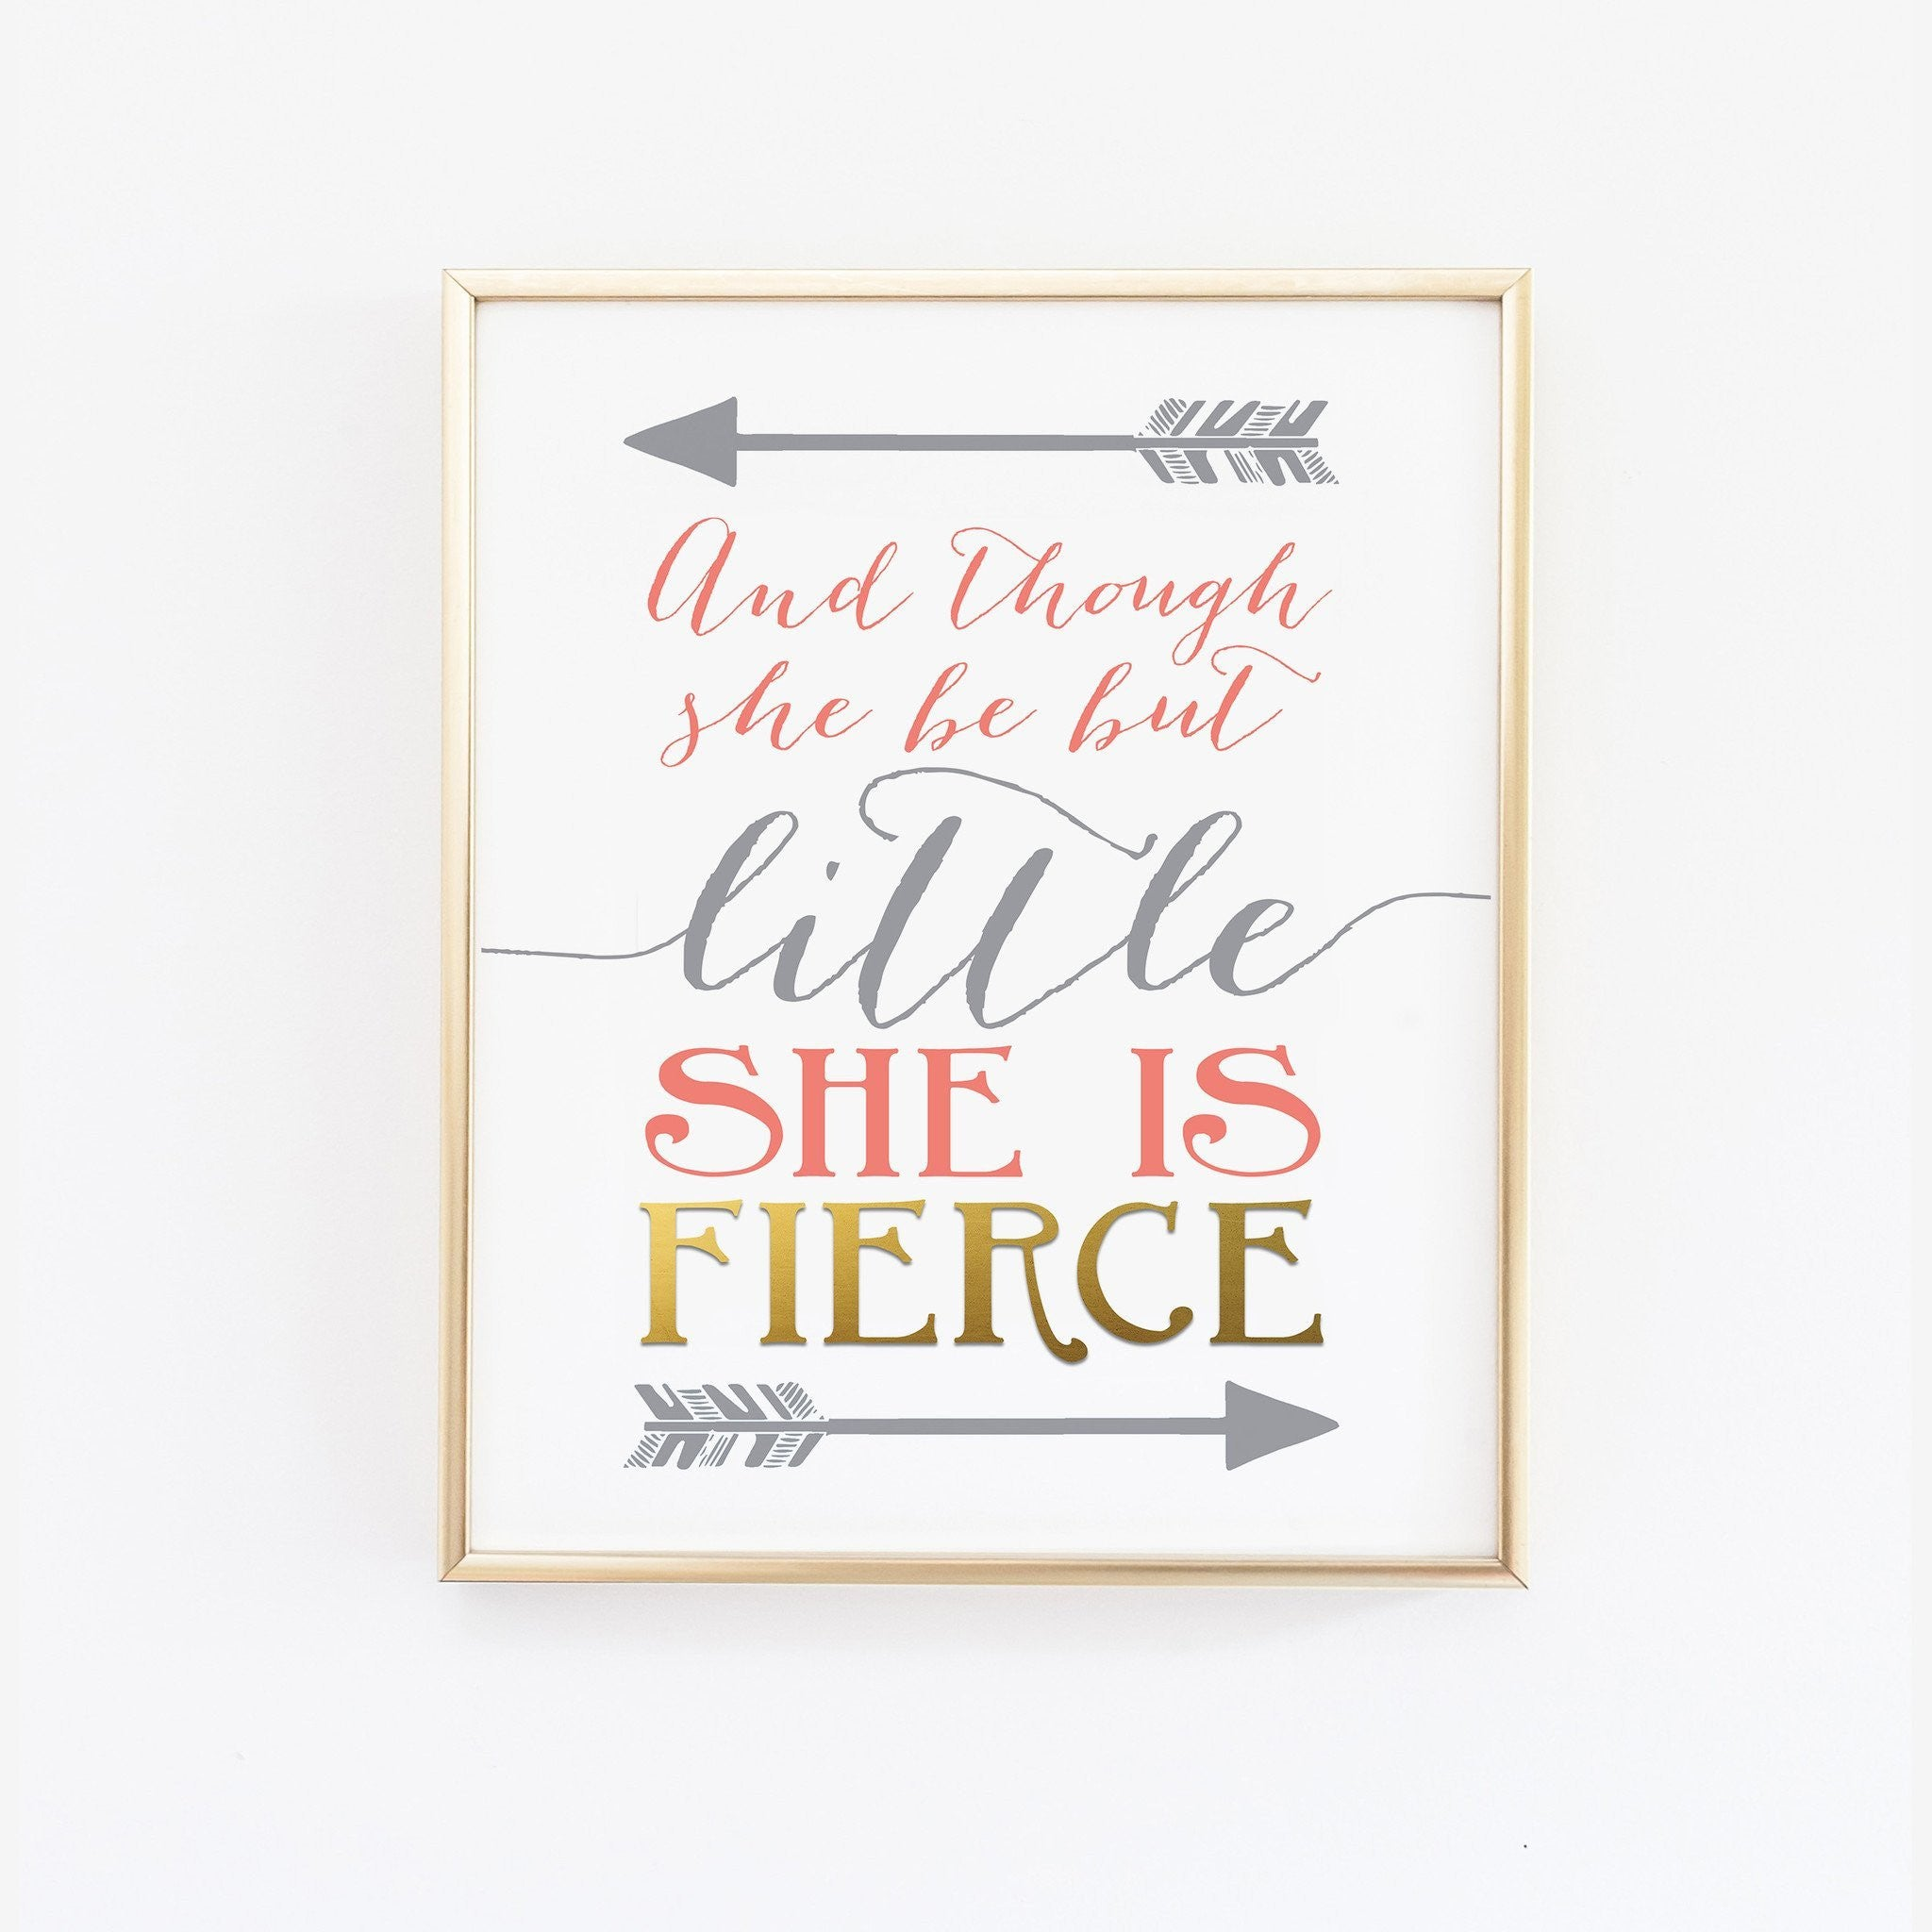 Wall and Wonder Wall Prints And though she be but little, she is fierce - Gray, Coral and Gold Nursery Wall Print